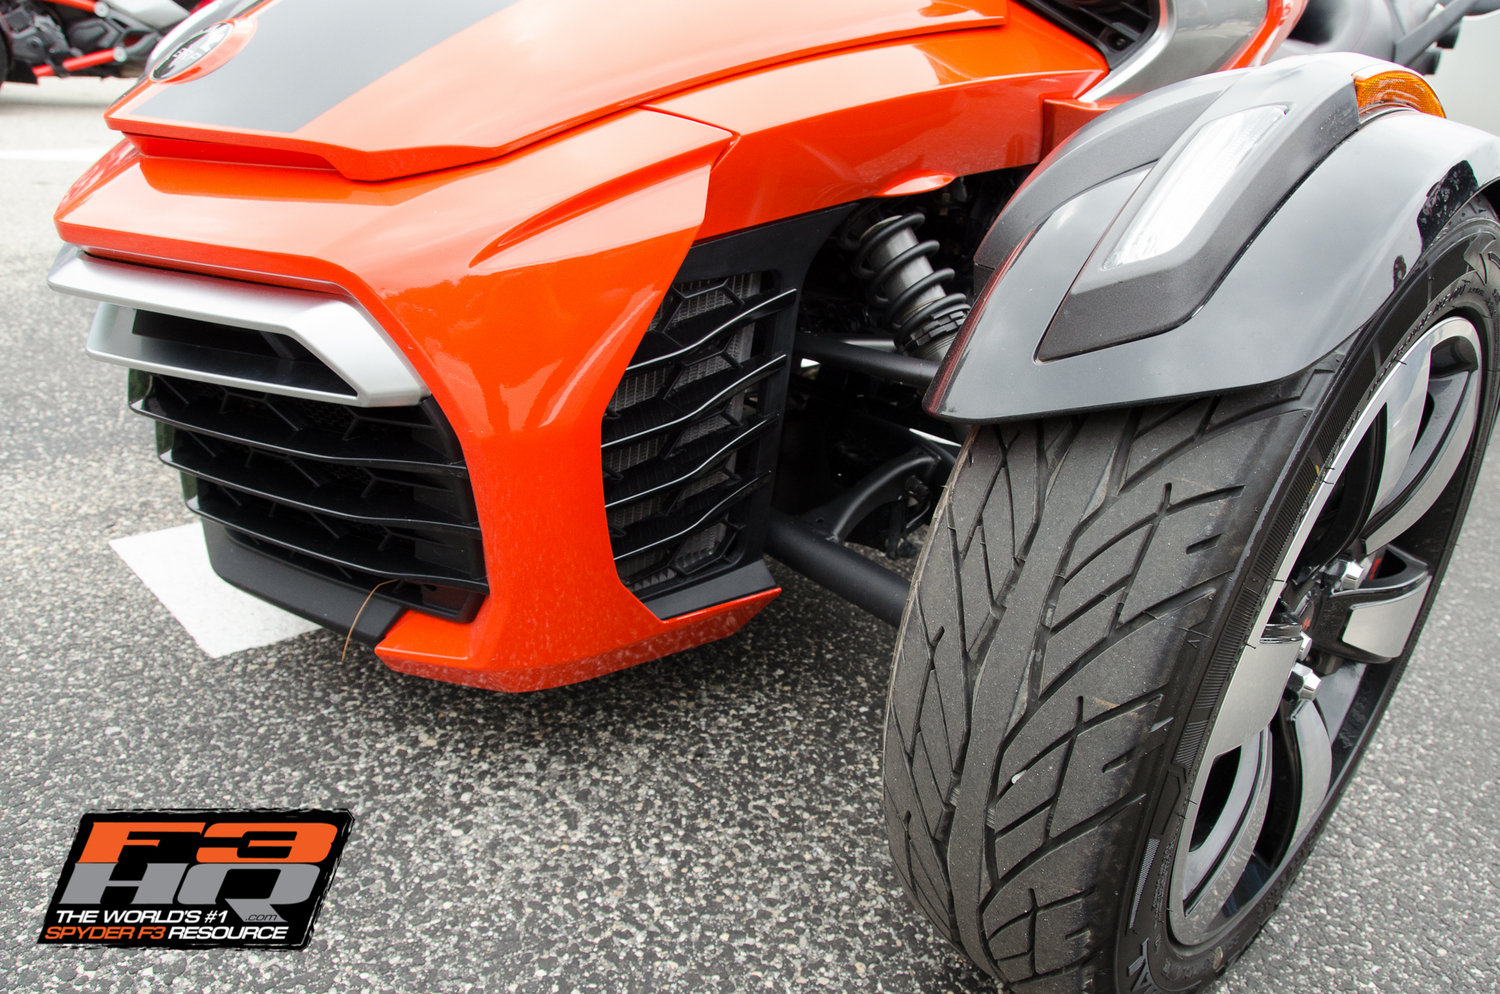 2014 Can-Am Spyder F3 - Product Launch and Ryde-26-17.jpg